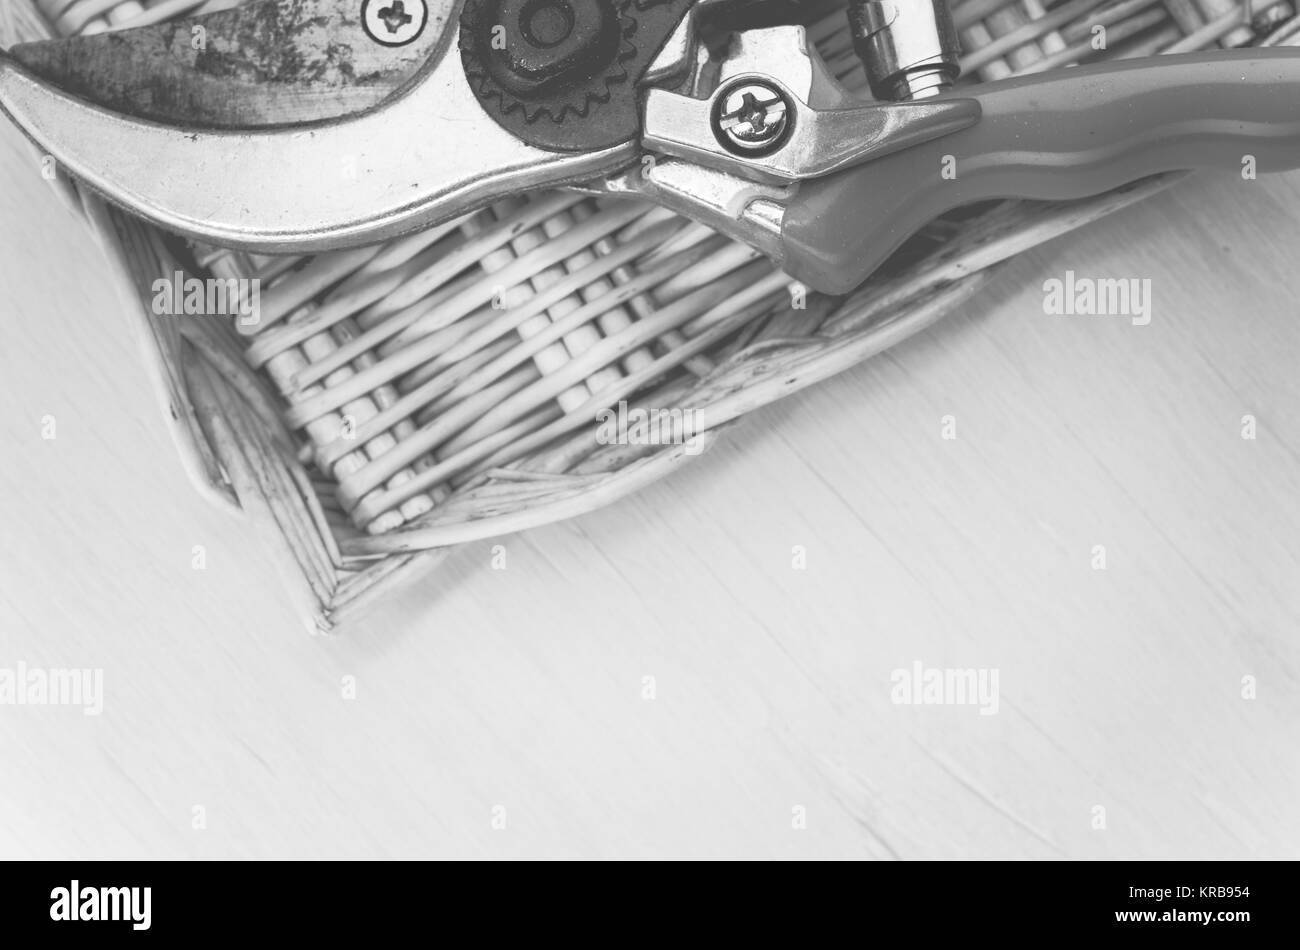 pair of worn garden scissors in a wicker box  close up on a bright tint wood surface - Stock Image